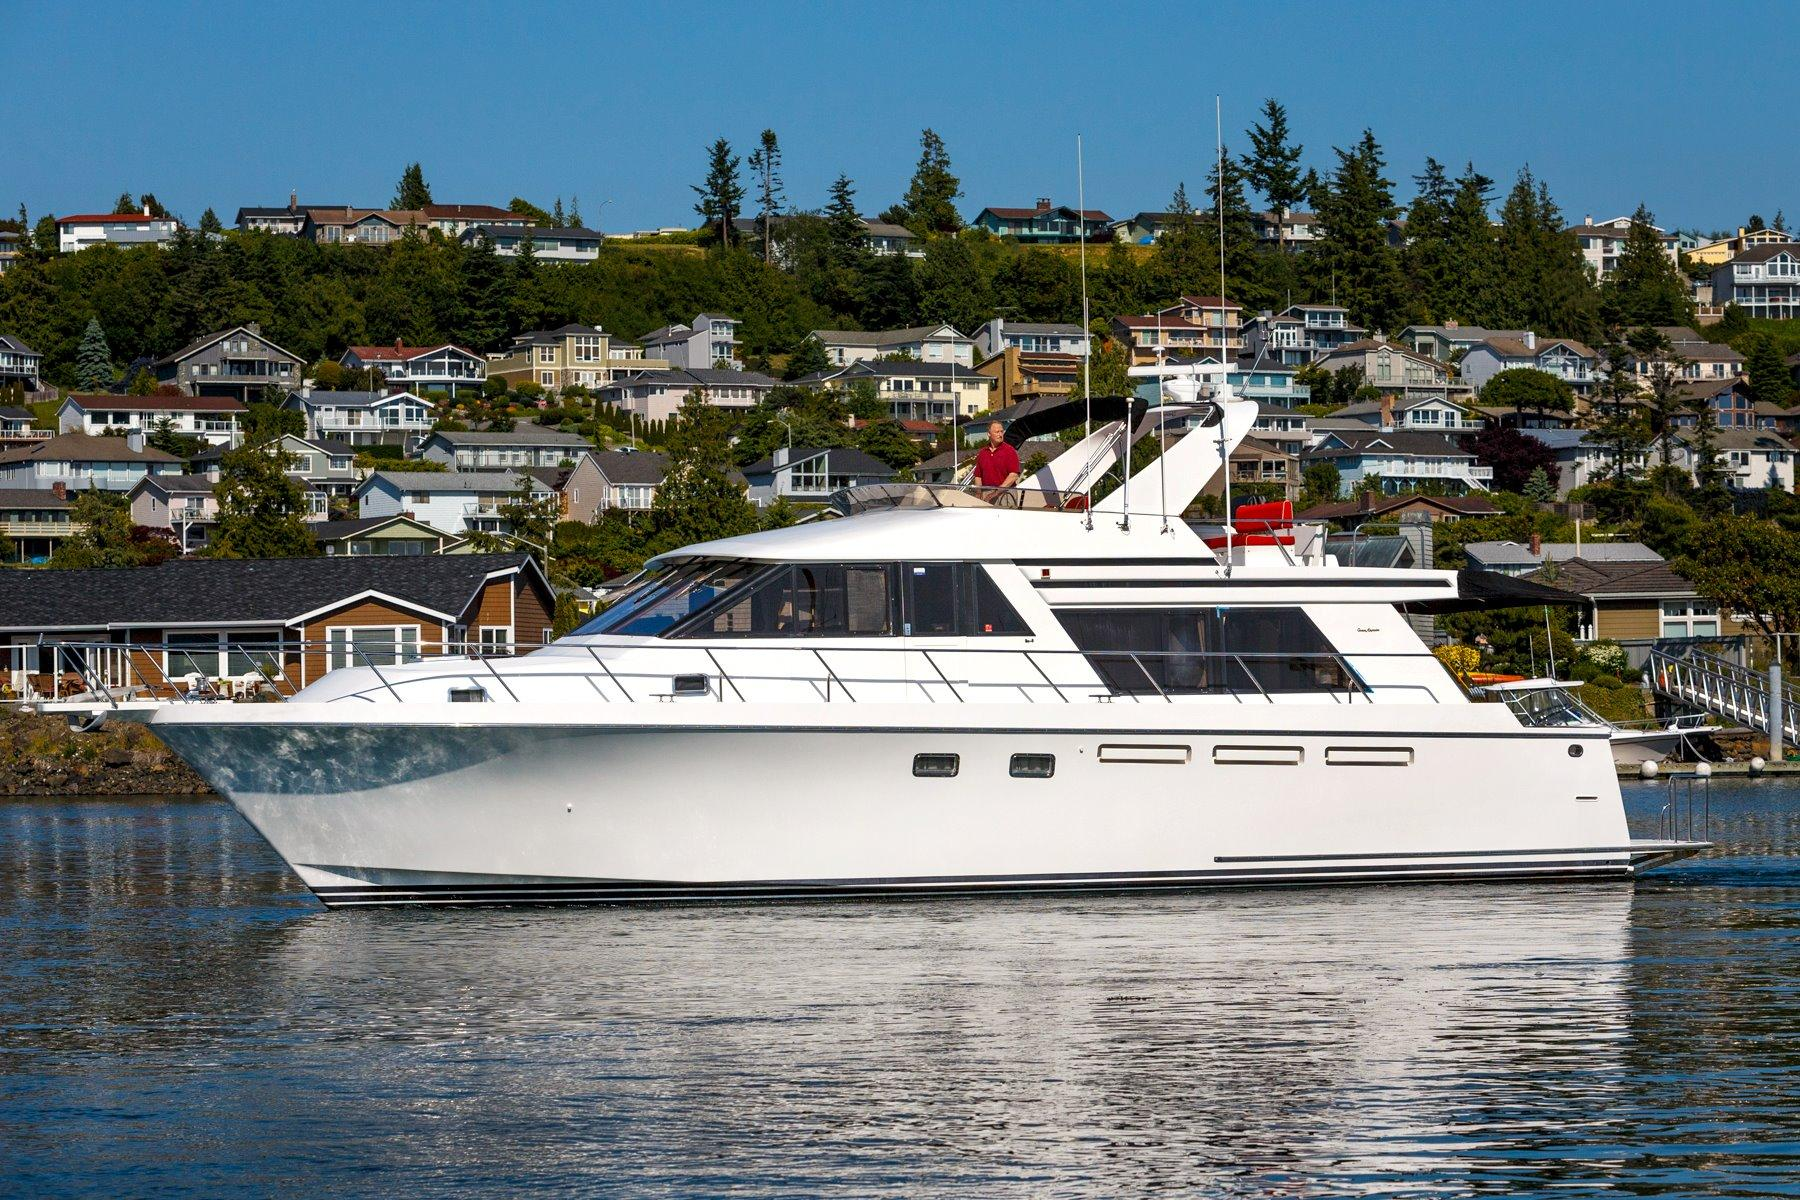 1996 Ocean Alexander 548 Pilothouse Yacht For Sale In Anacortes Wa